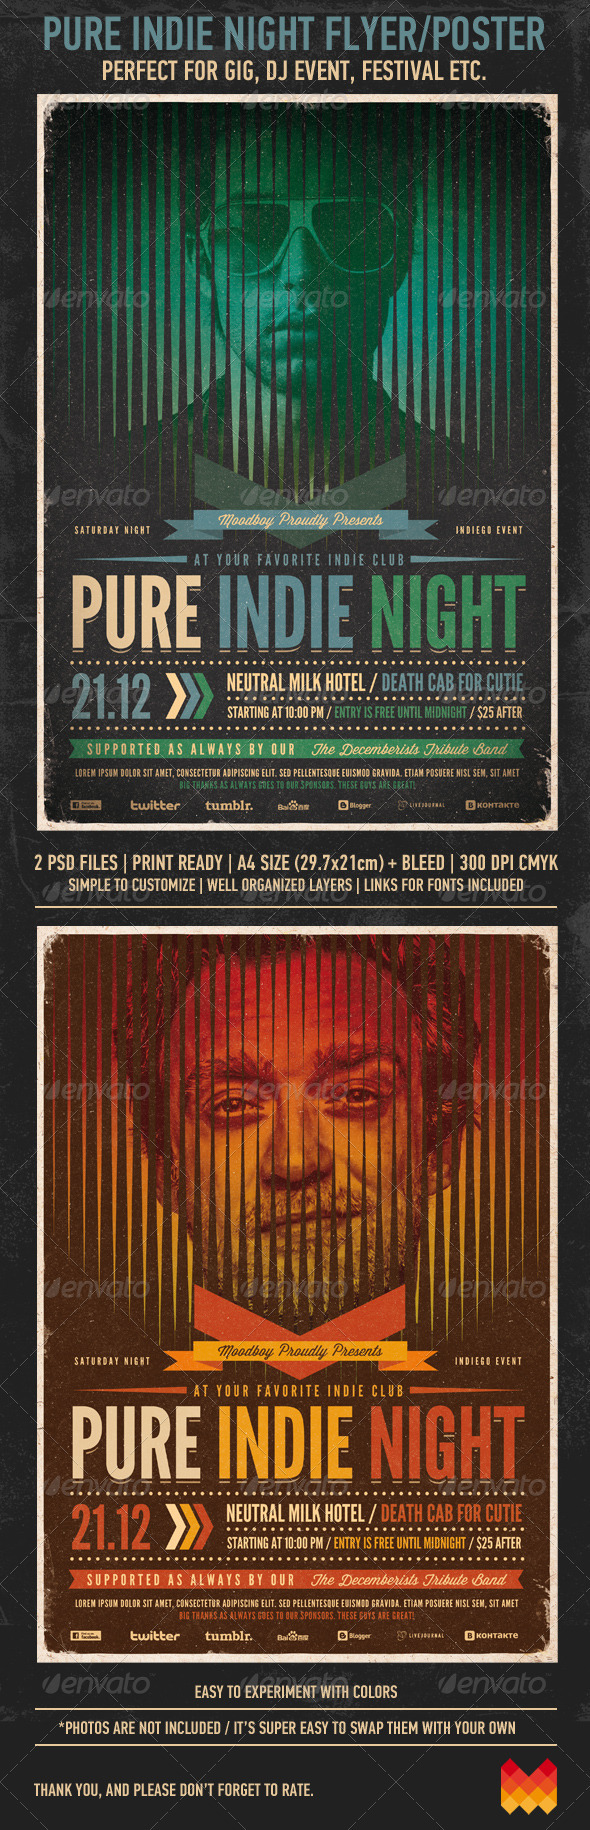 Pure Indie Night Flyer / Poster - Events Flyers